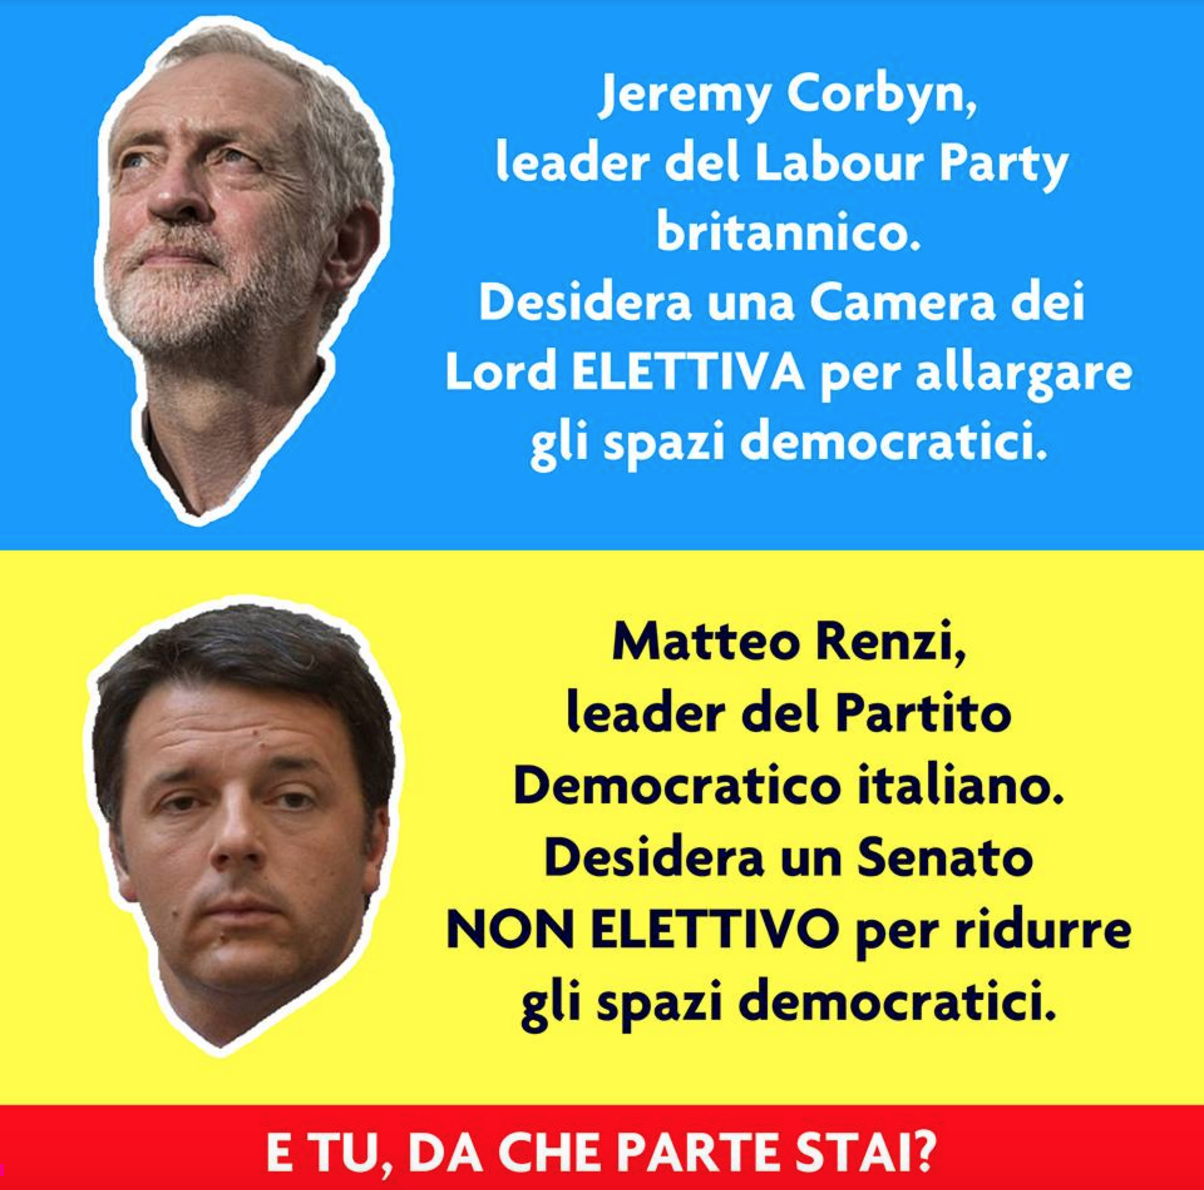 corbyn renzi differenze sul senato